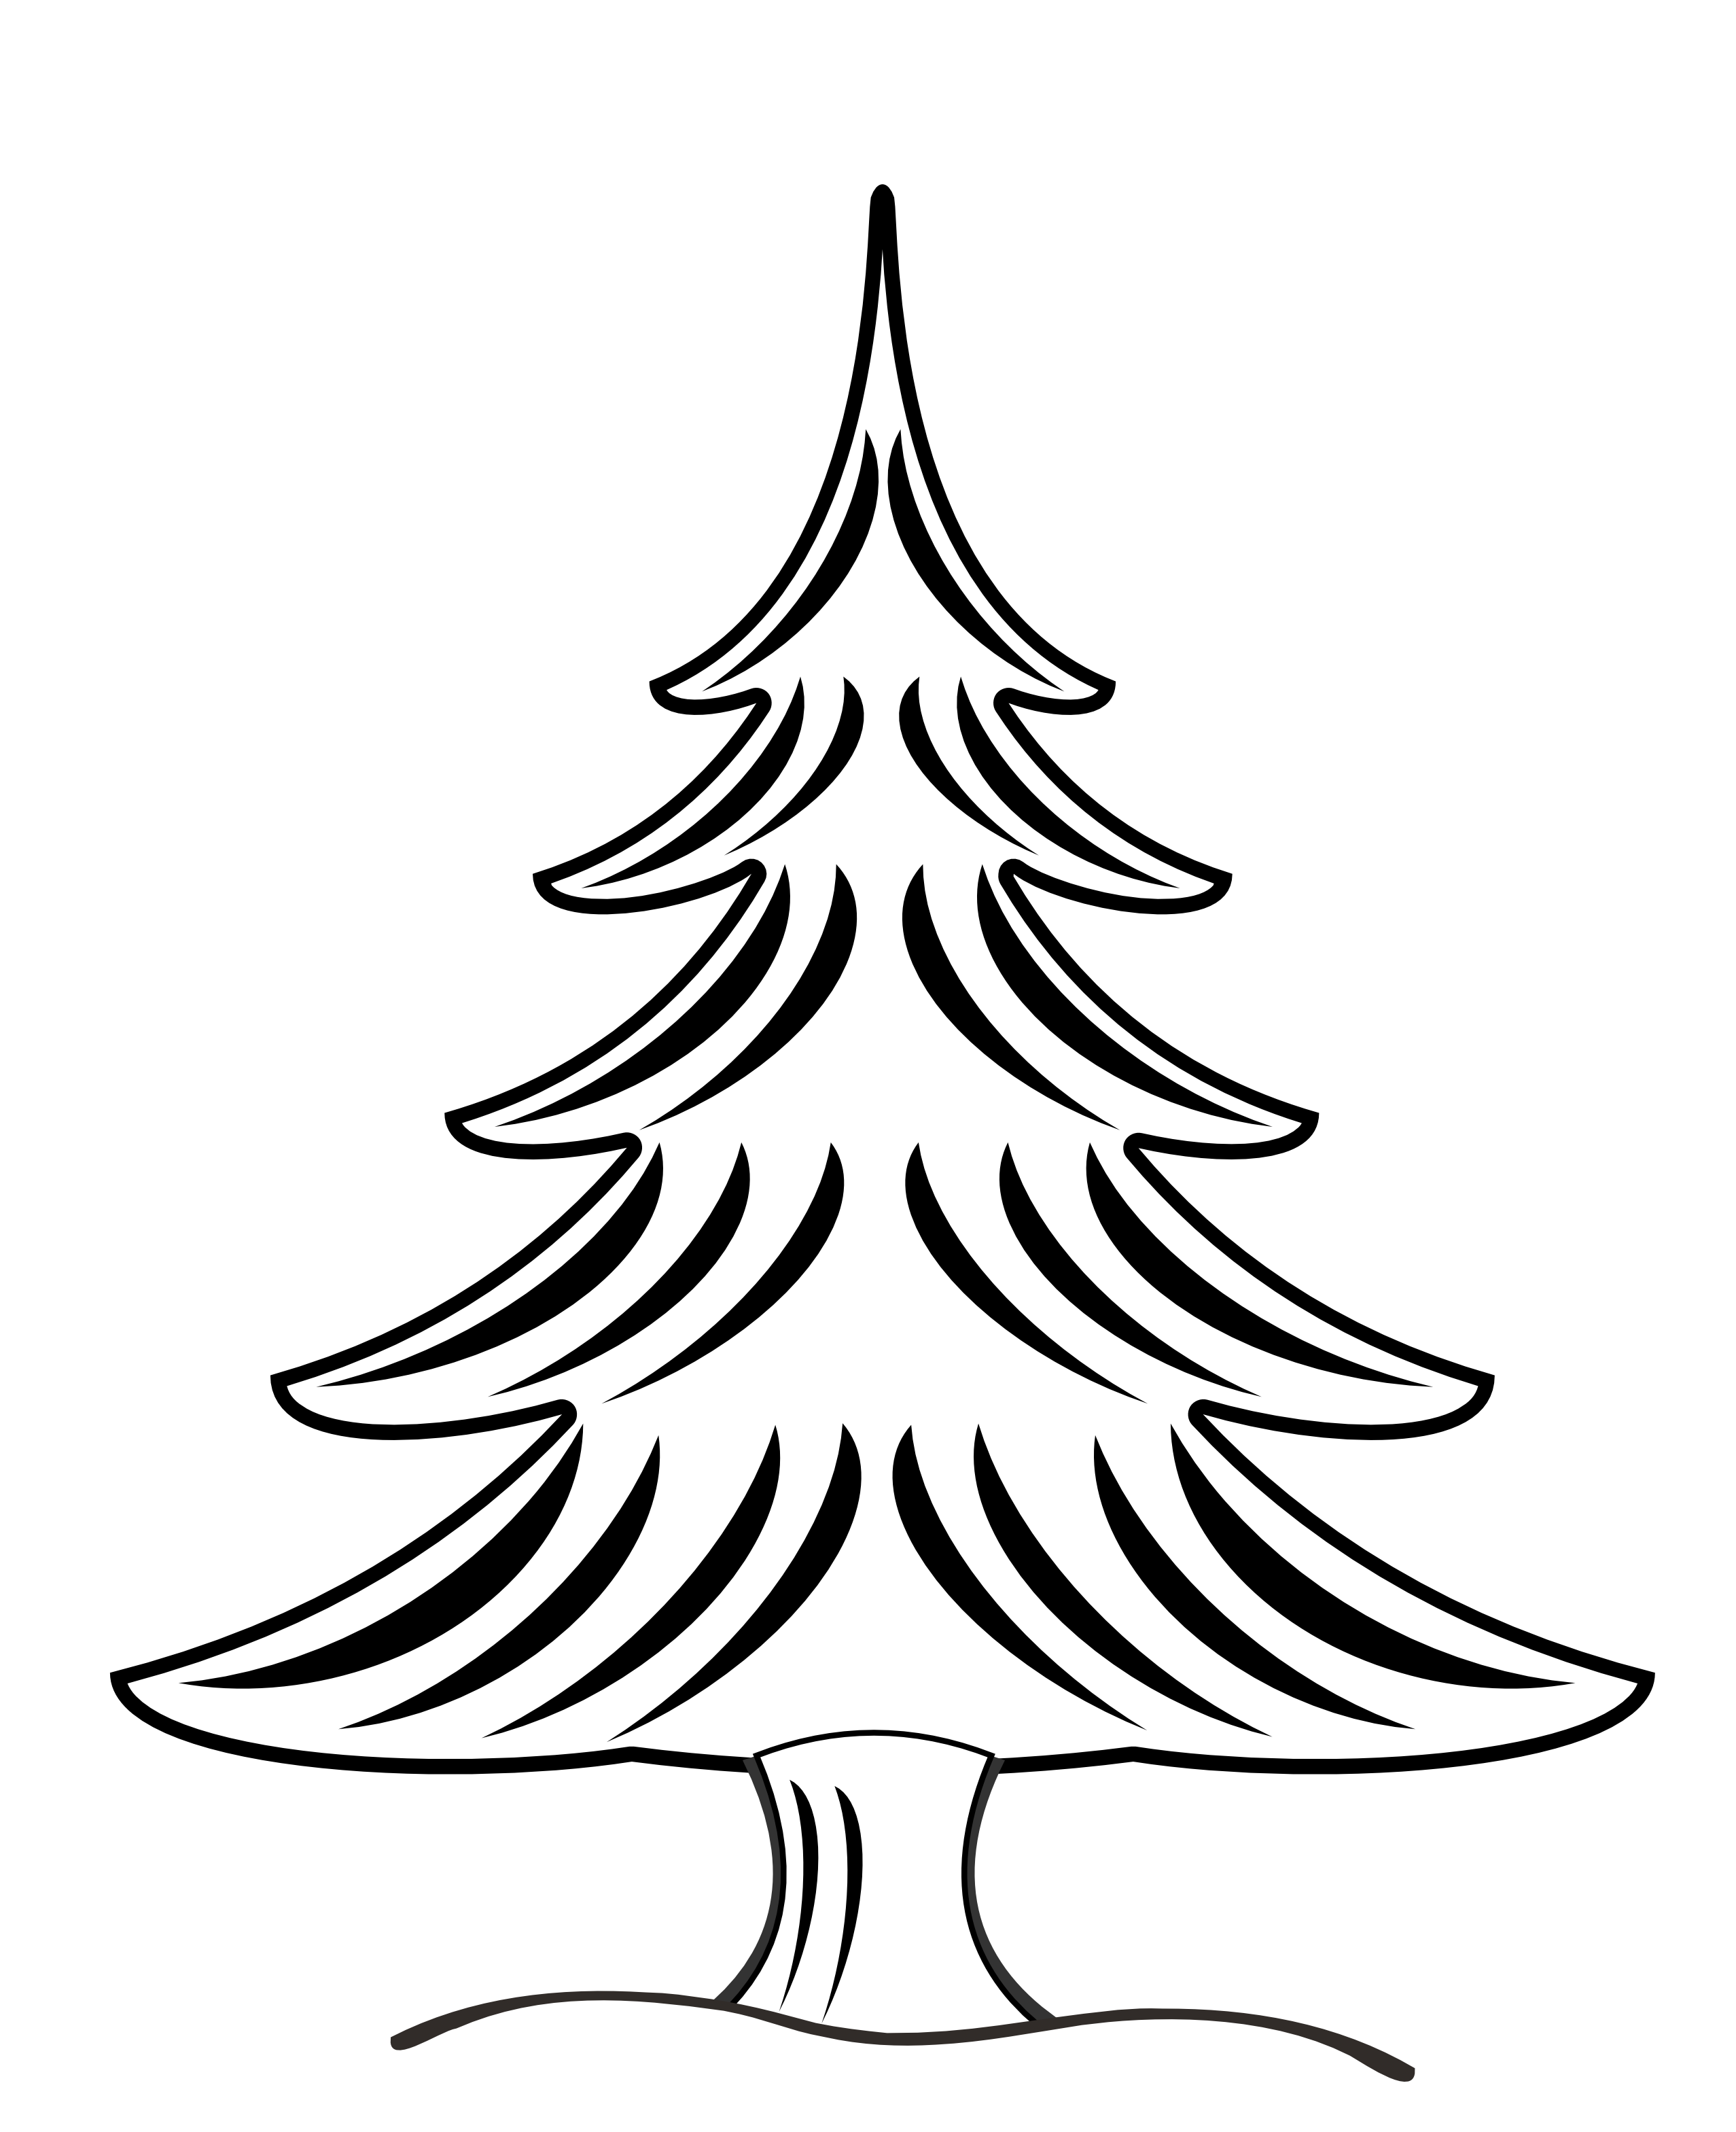 black%20and%20white%20trees%20clipart